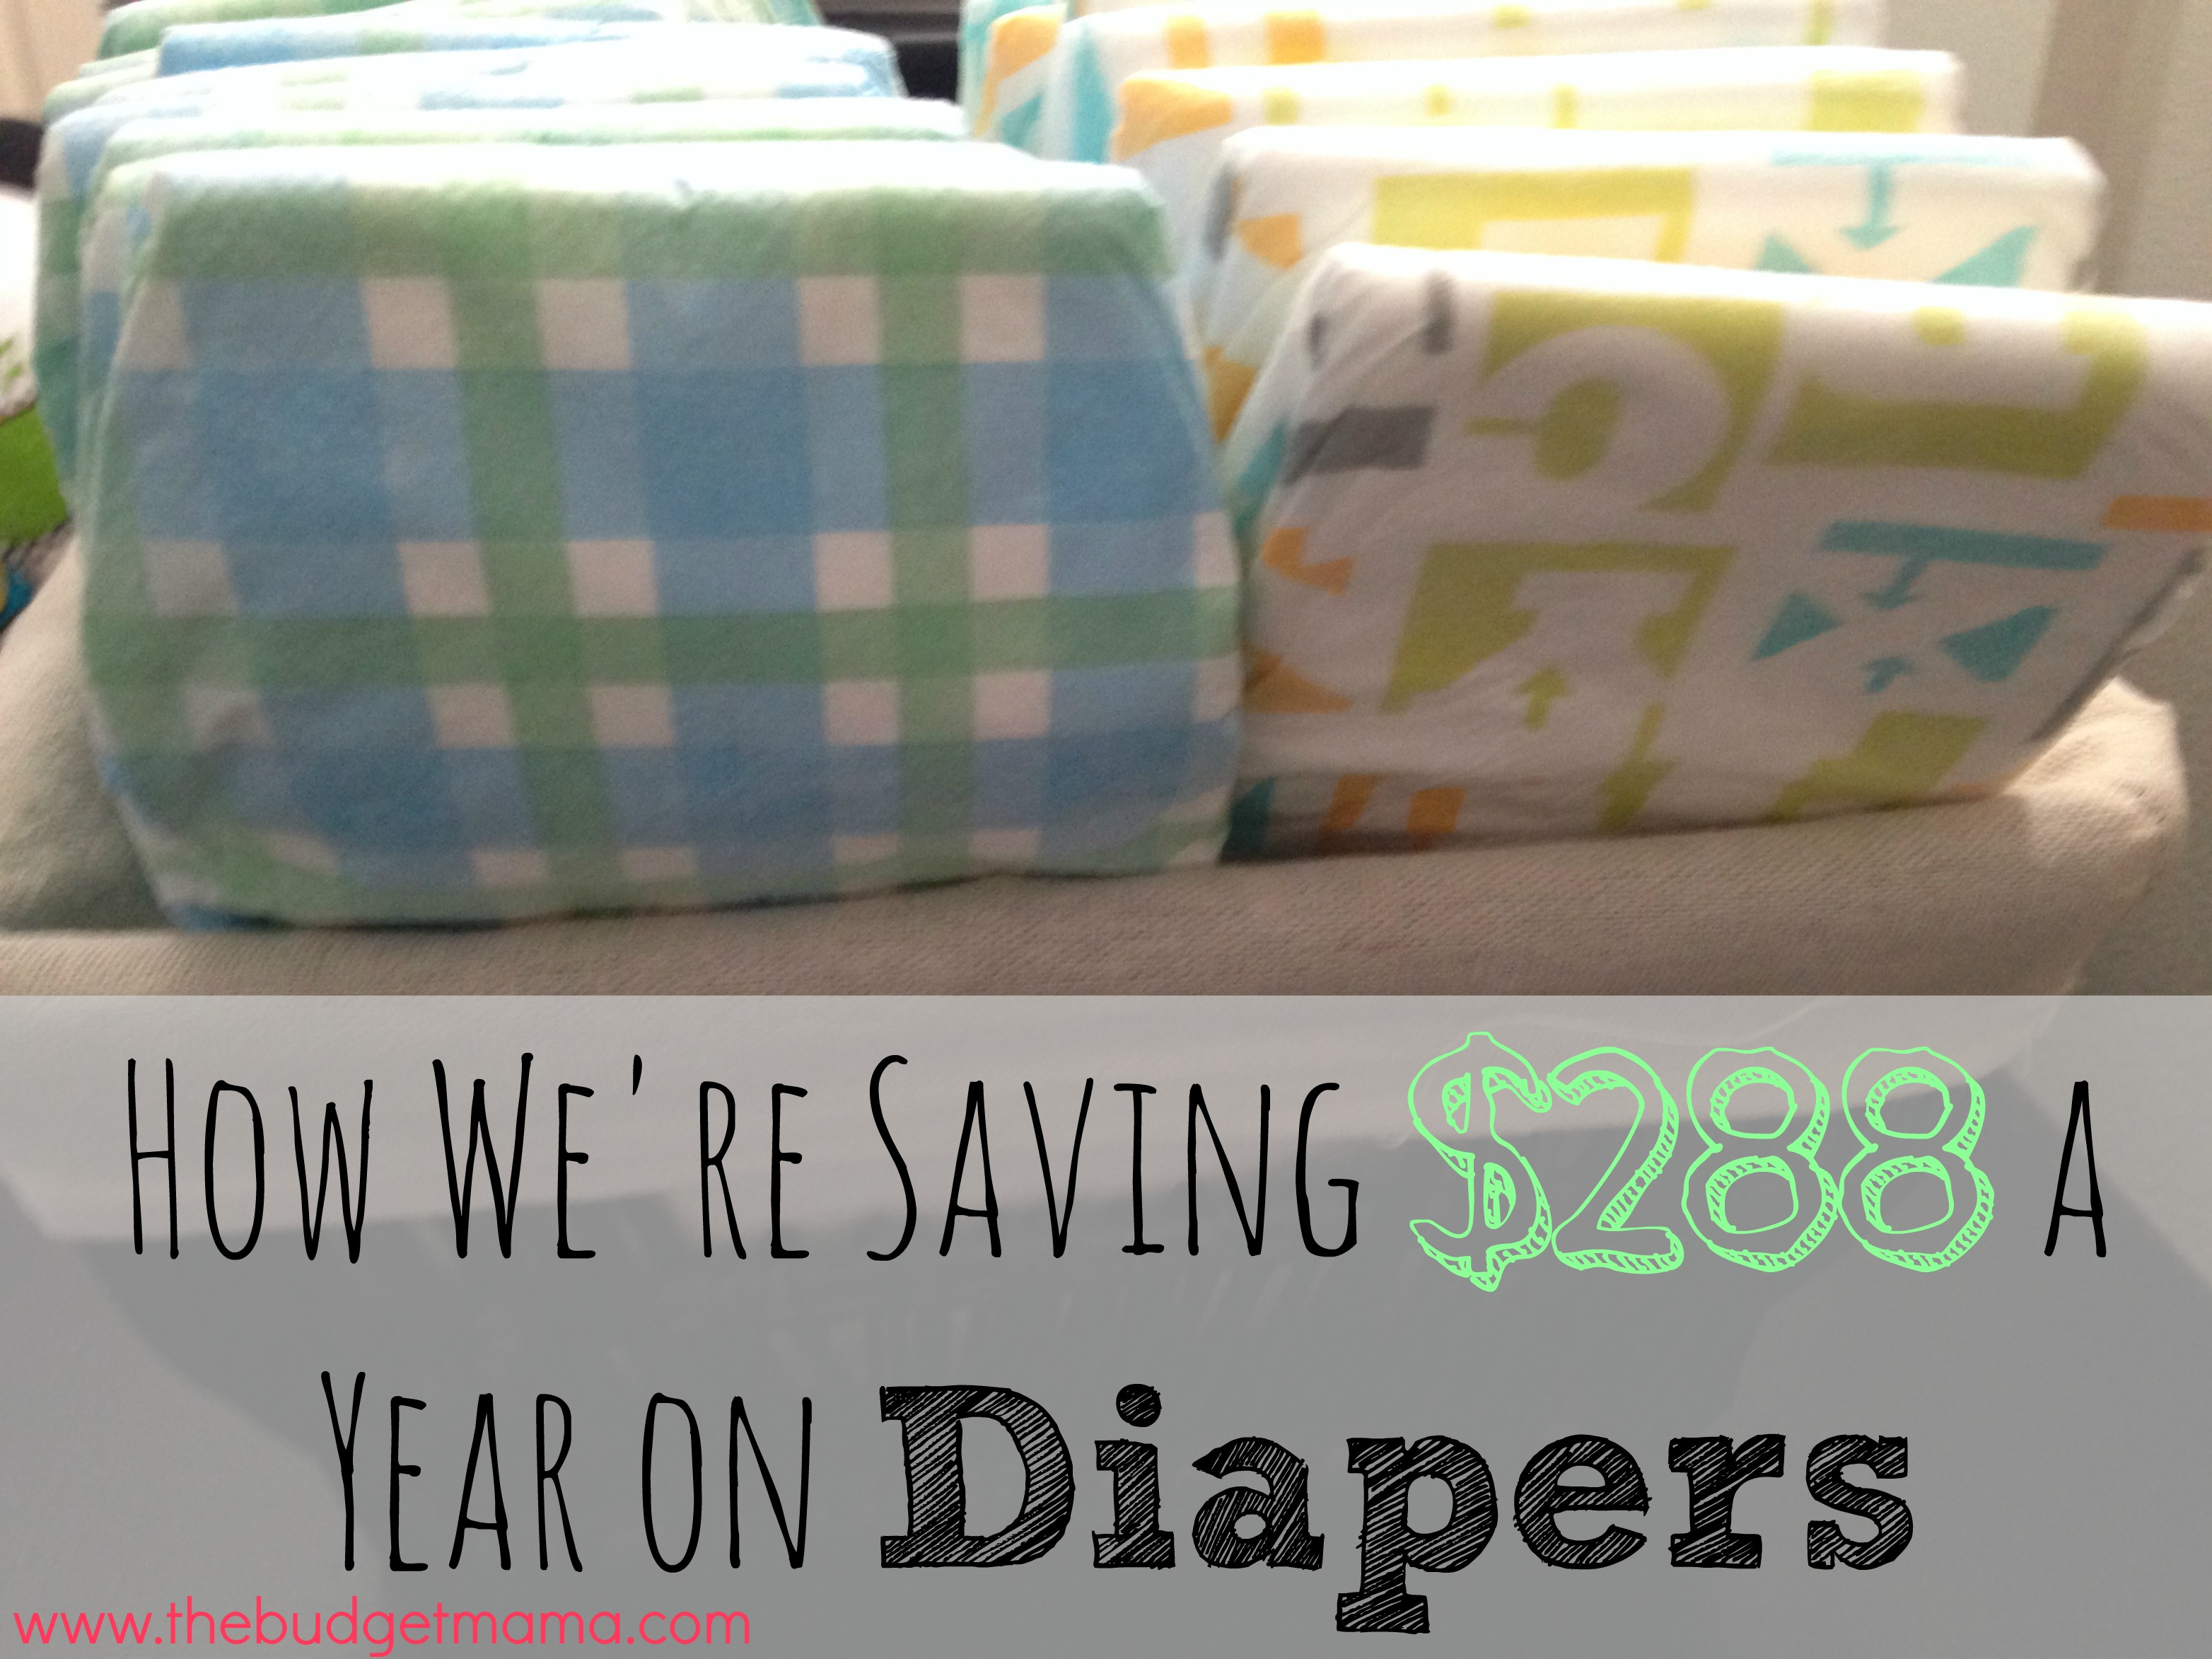 How we re saving 288 a year on diapers the budget mama